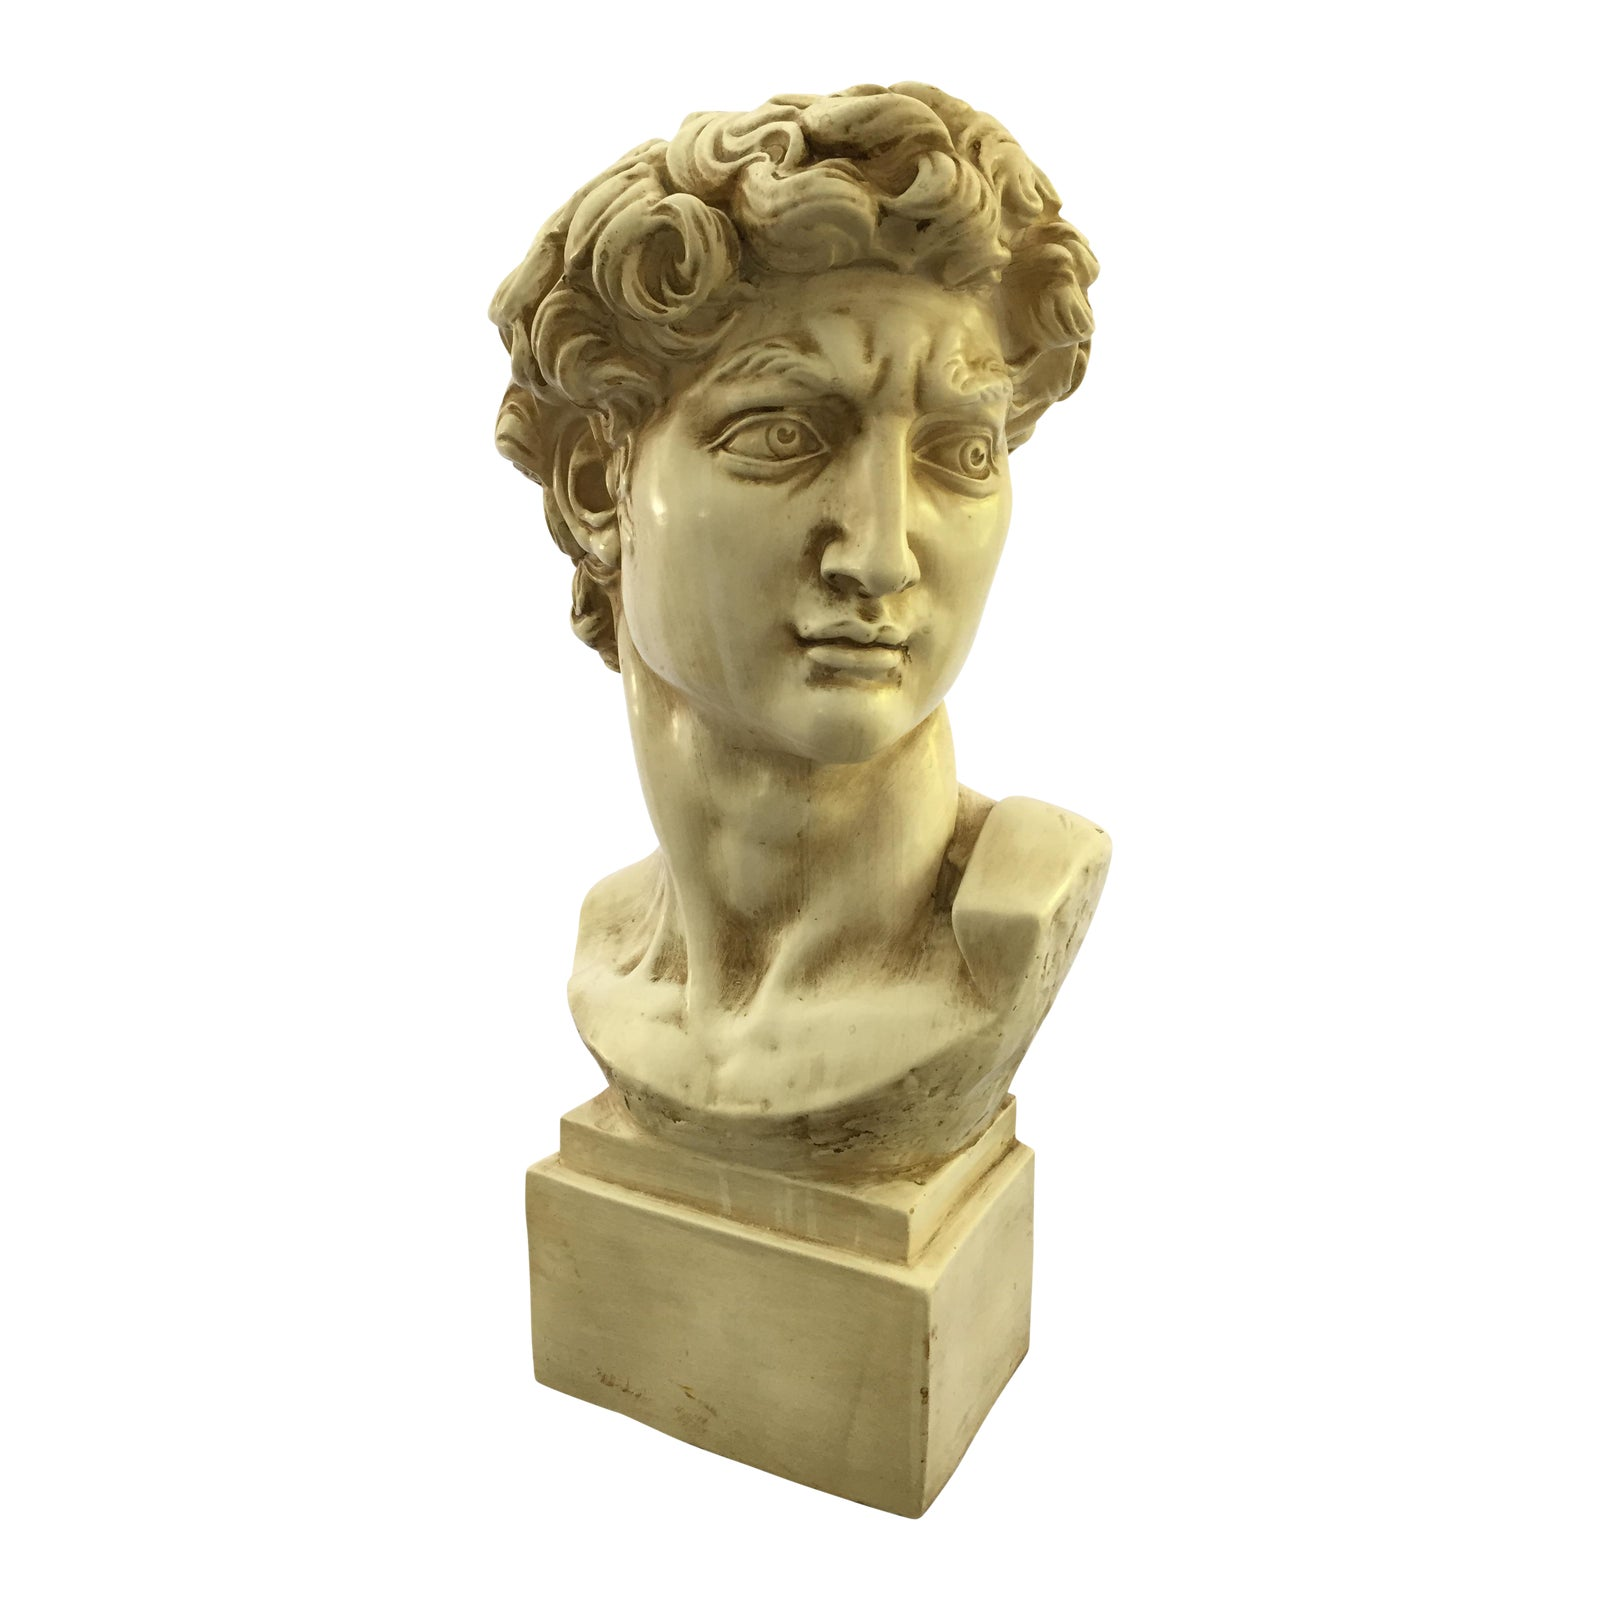 1965 David Bust Sculpture Chairish